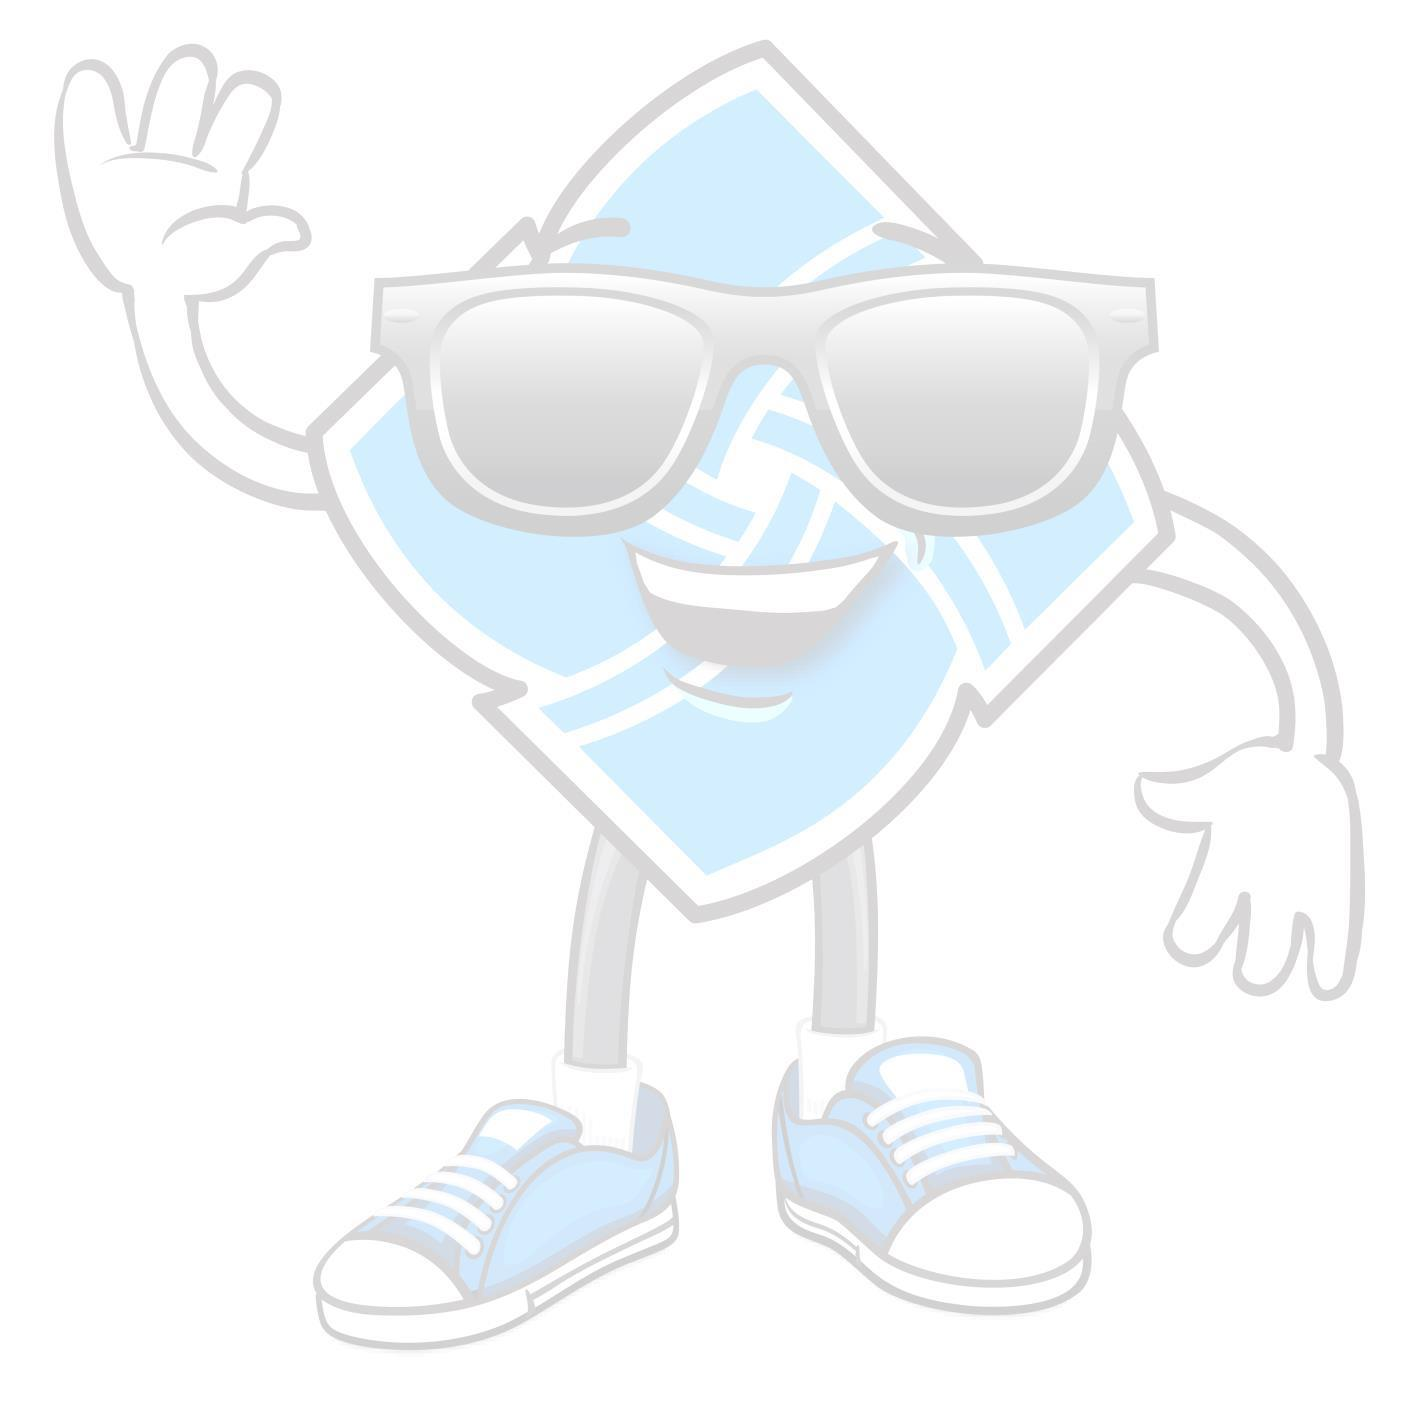 smiling waving credit union logo with sunglasses